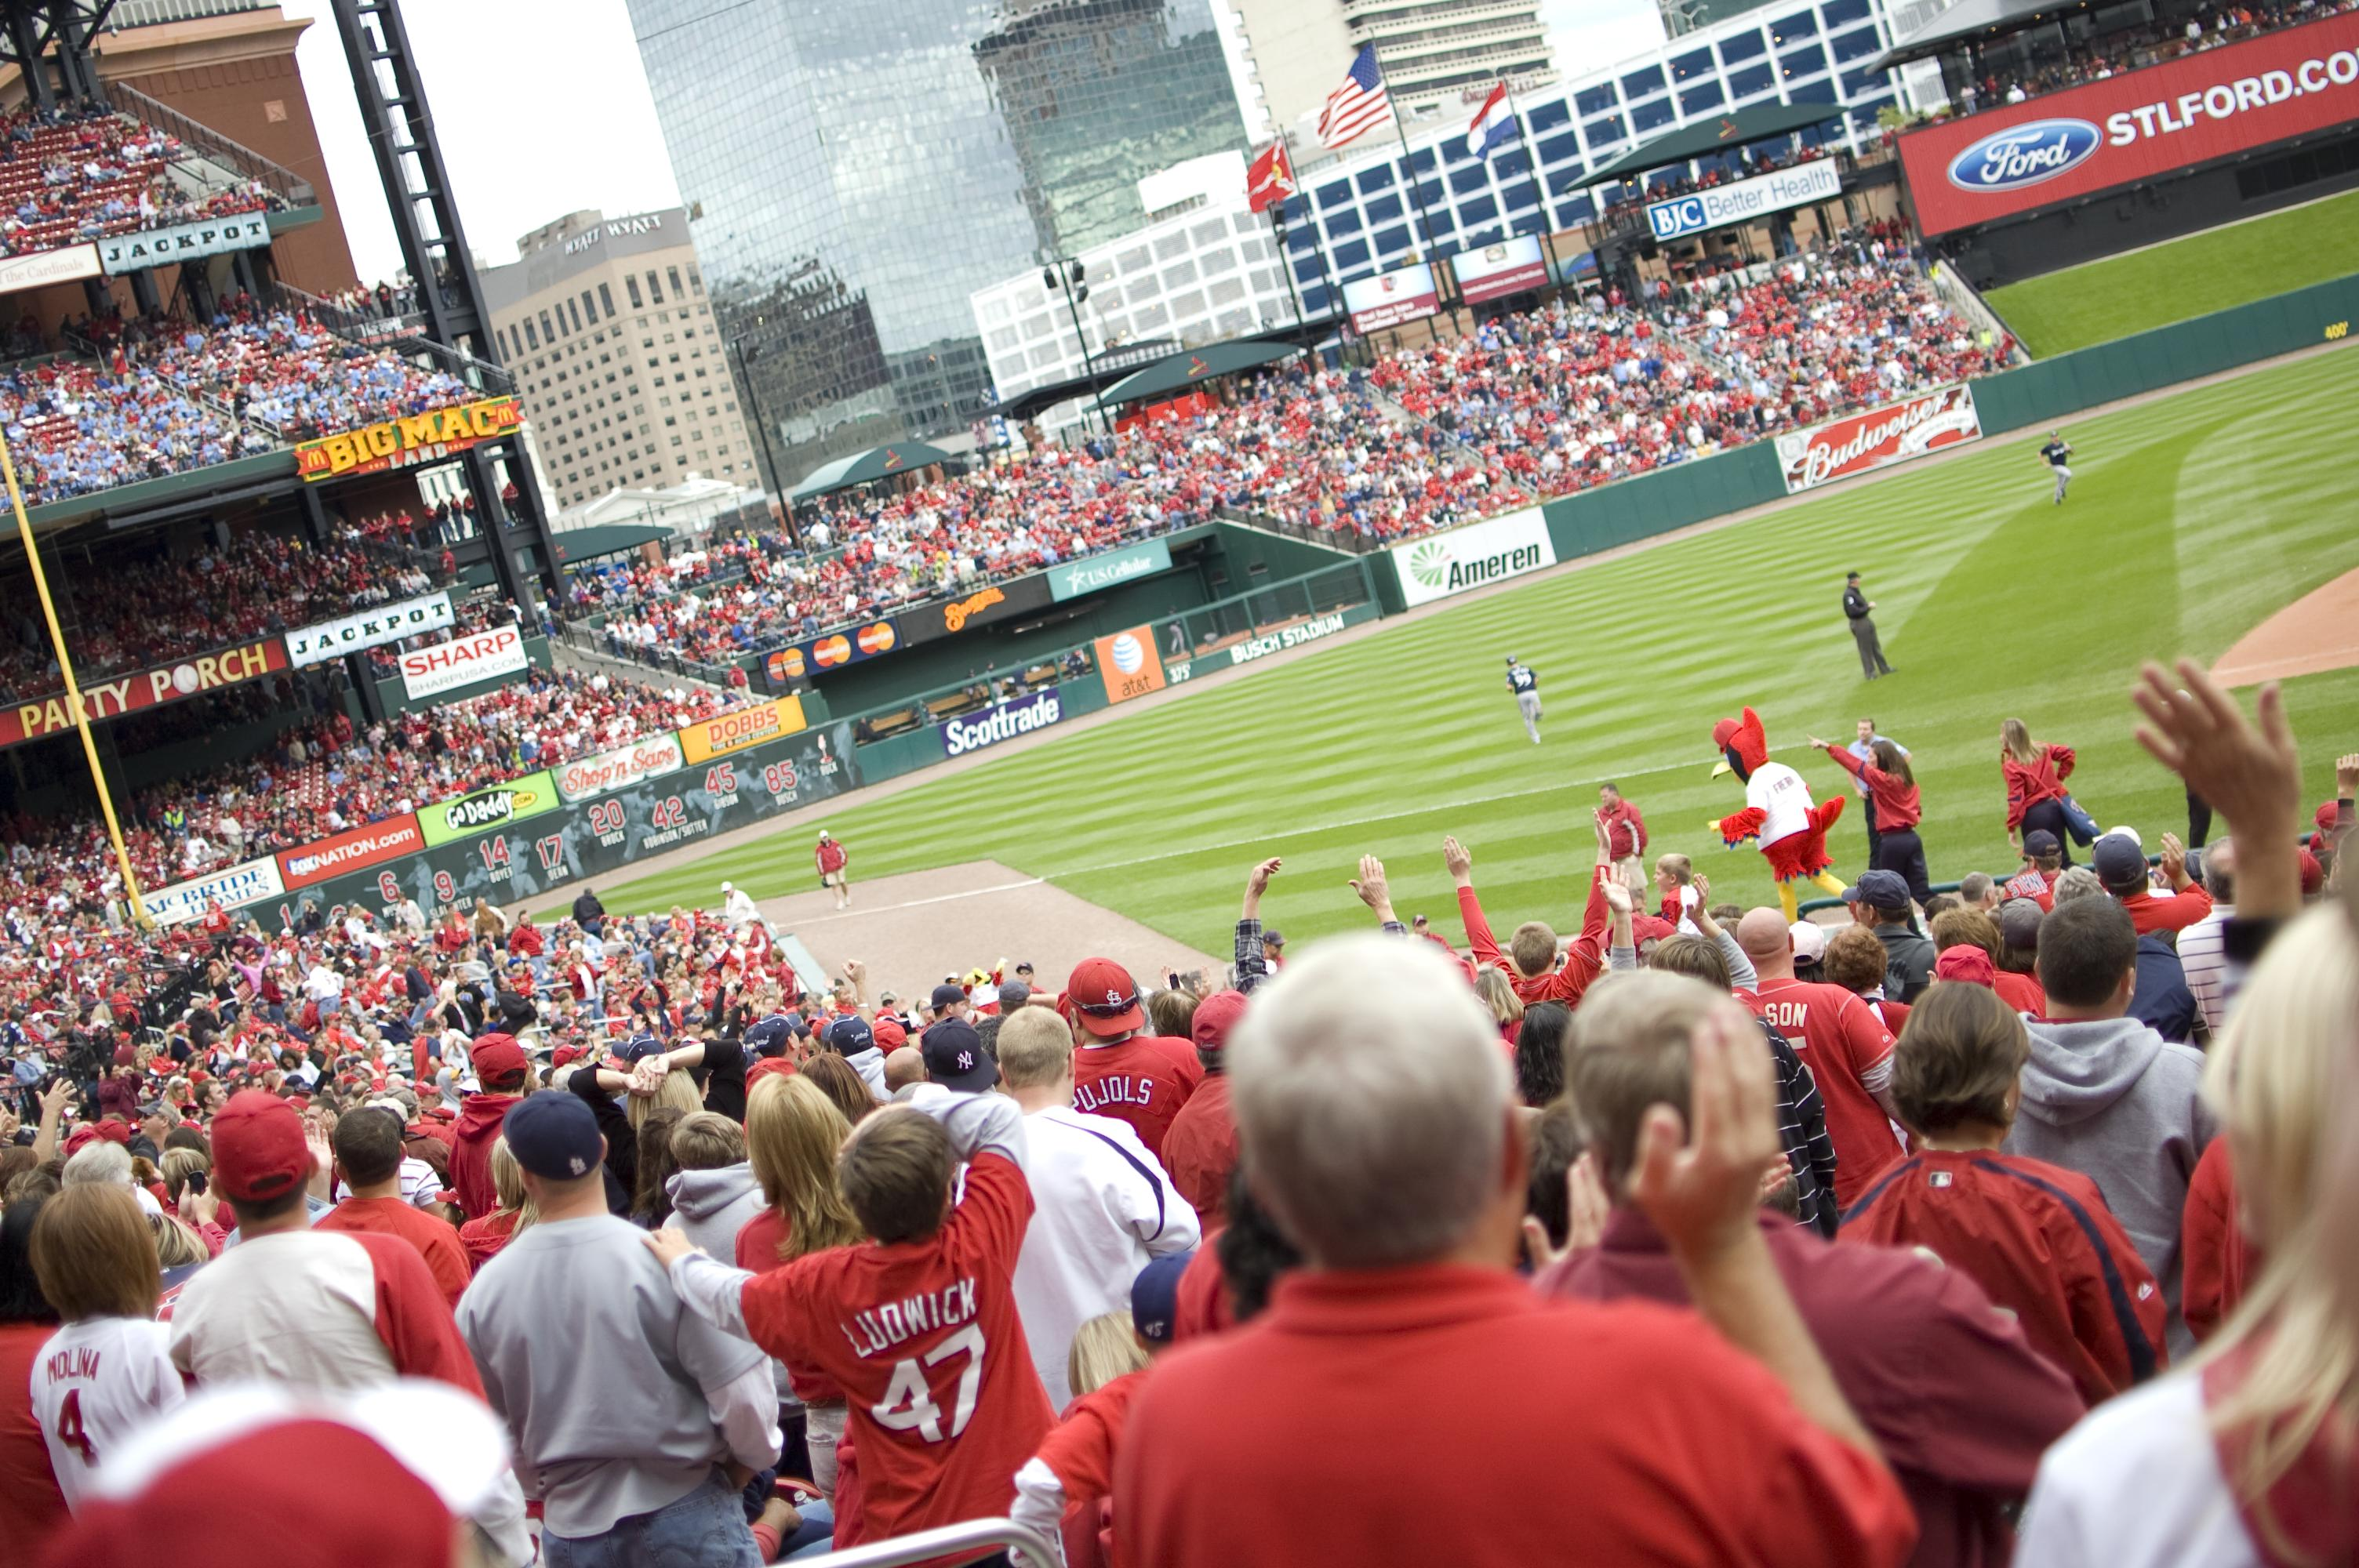 St. Louis Cardinal Fans Are #1 in Nation